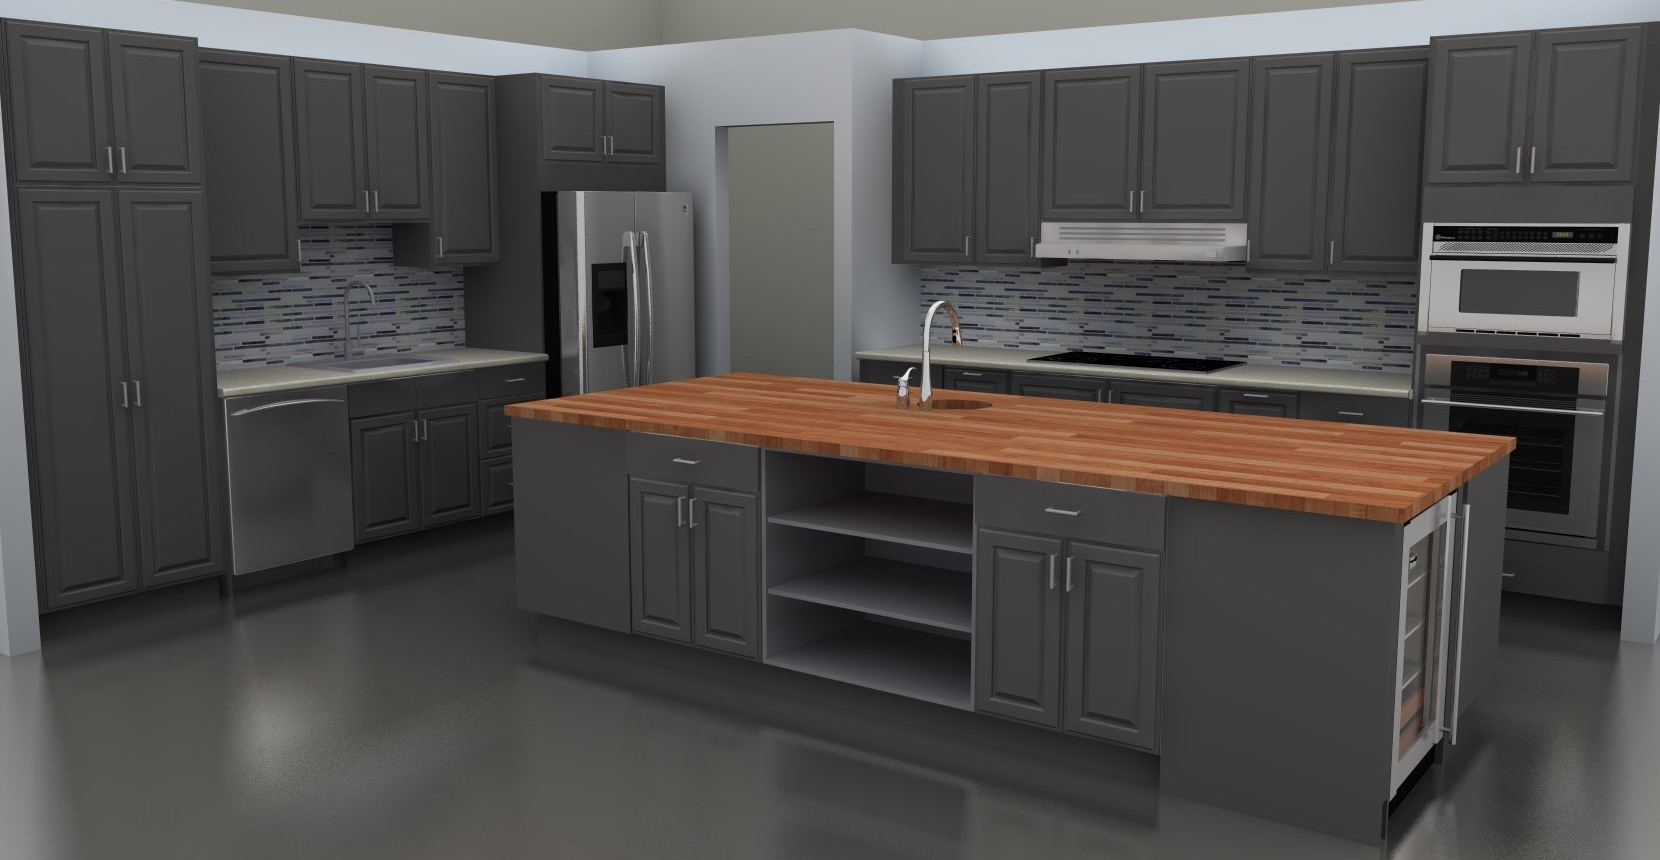 stylish lidingo gray doors for a new ikea kitchen 8337 2003